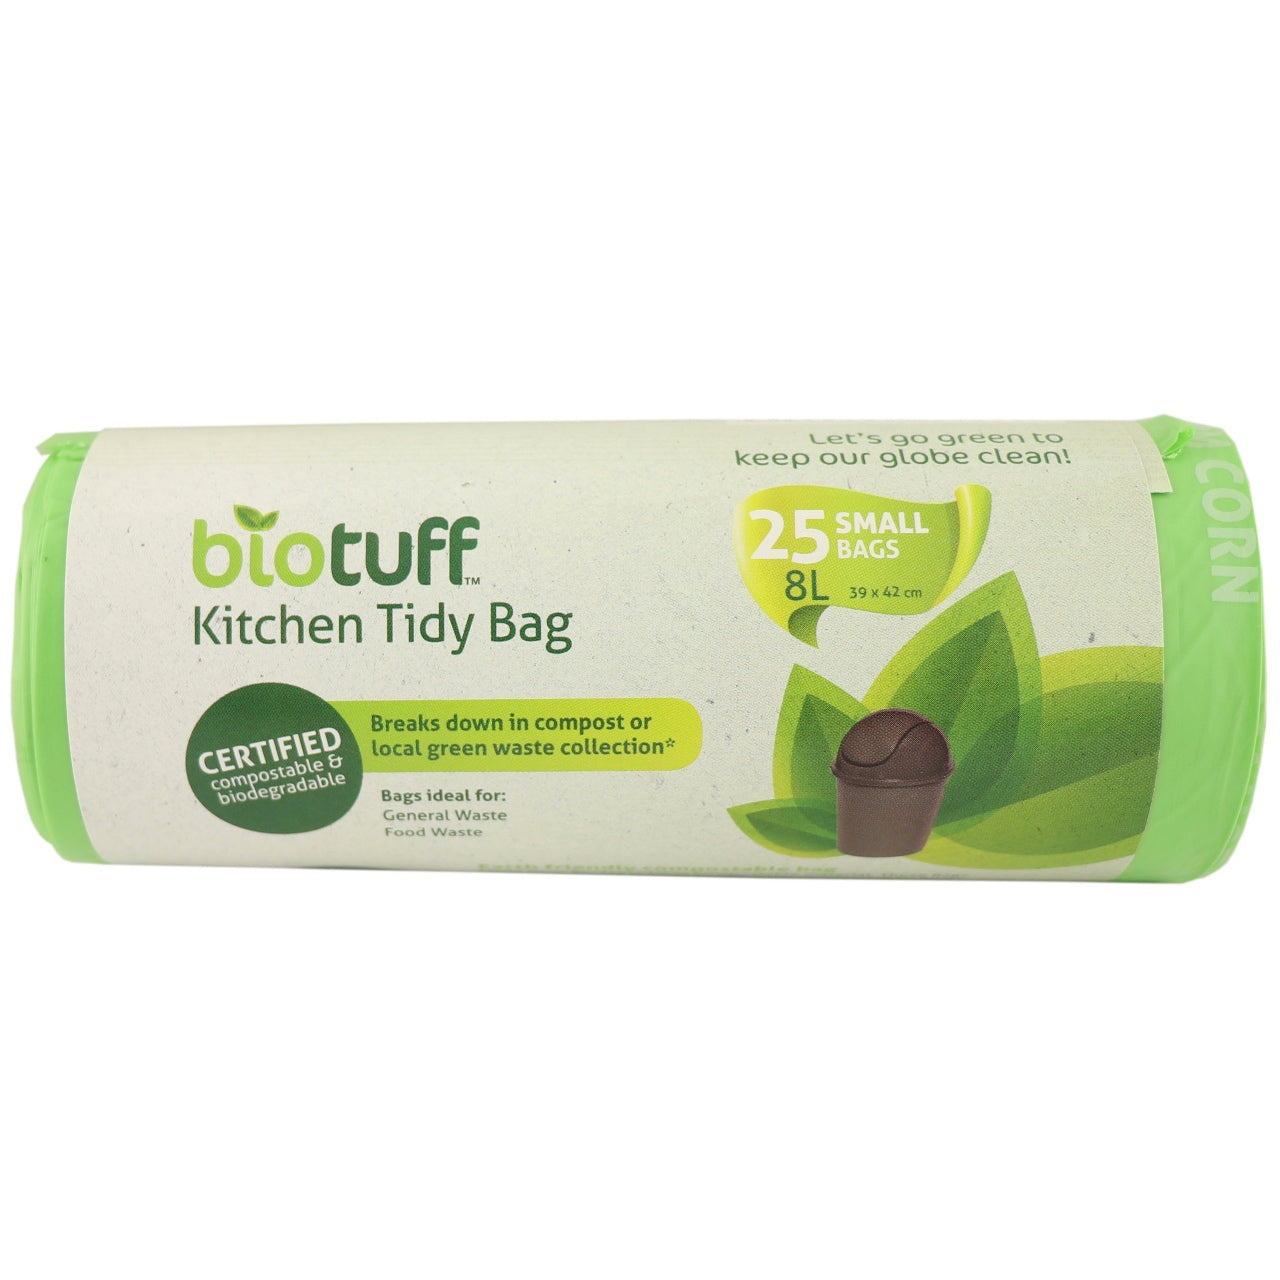 Biotuff Kitchen Tidy Bag -Small